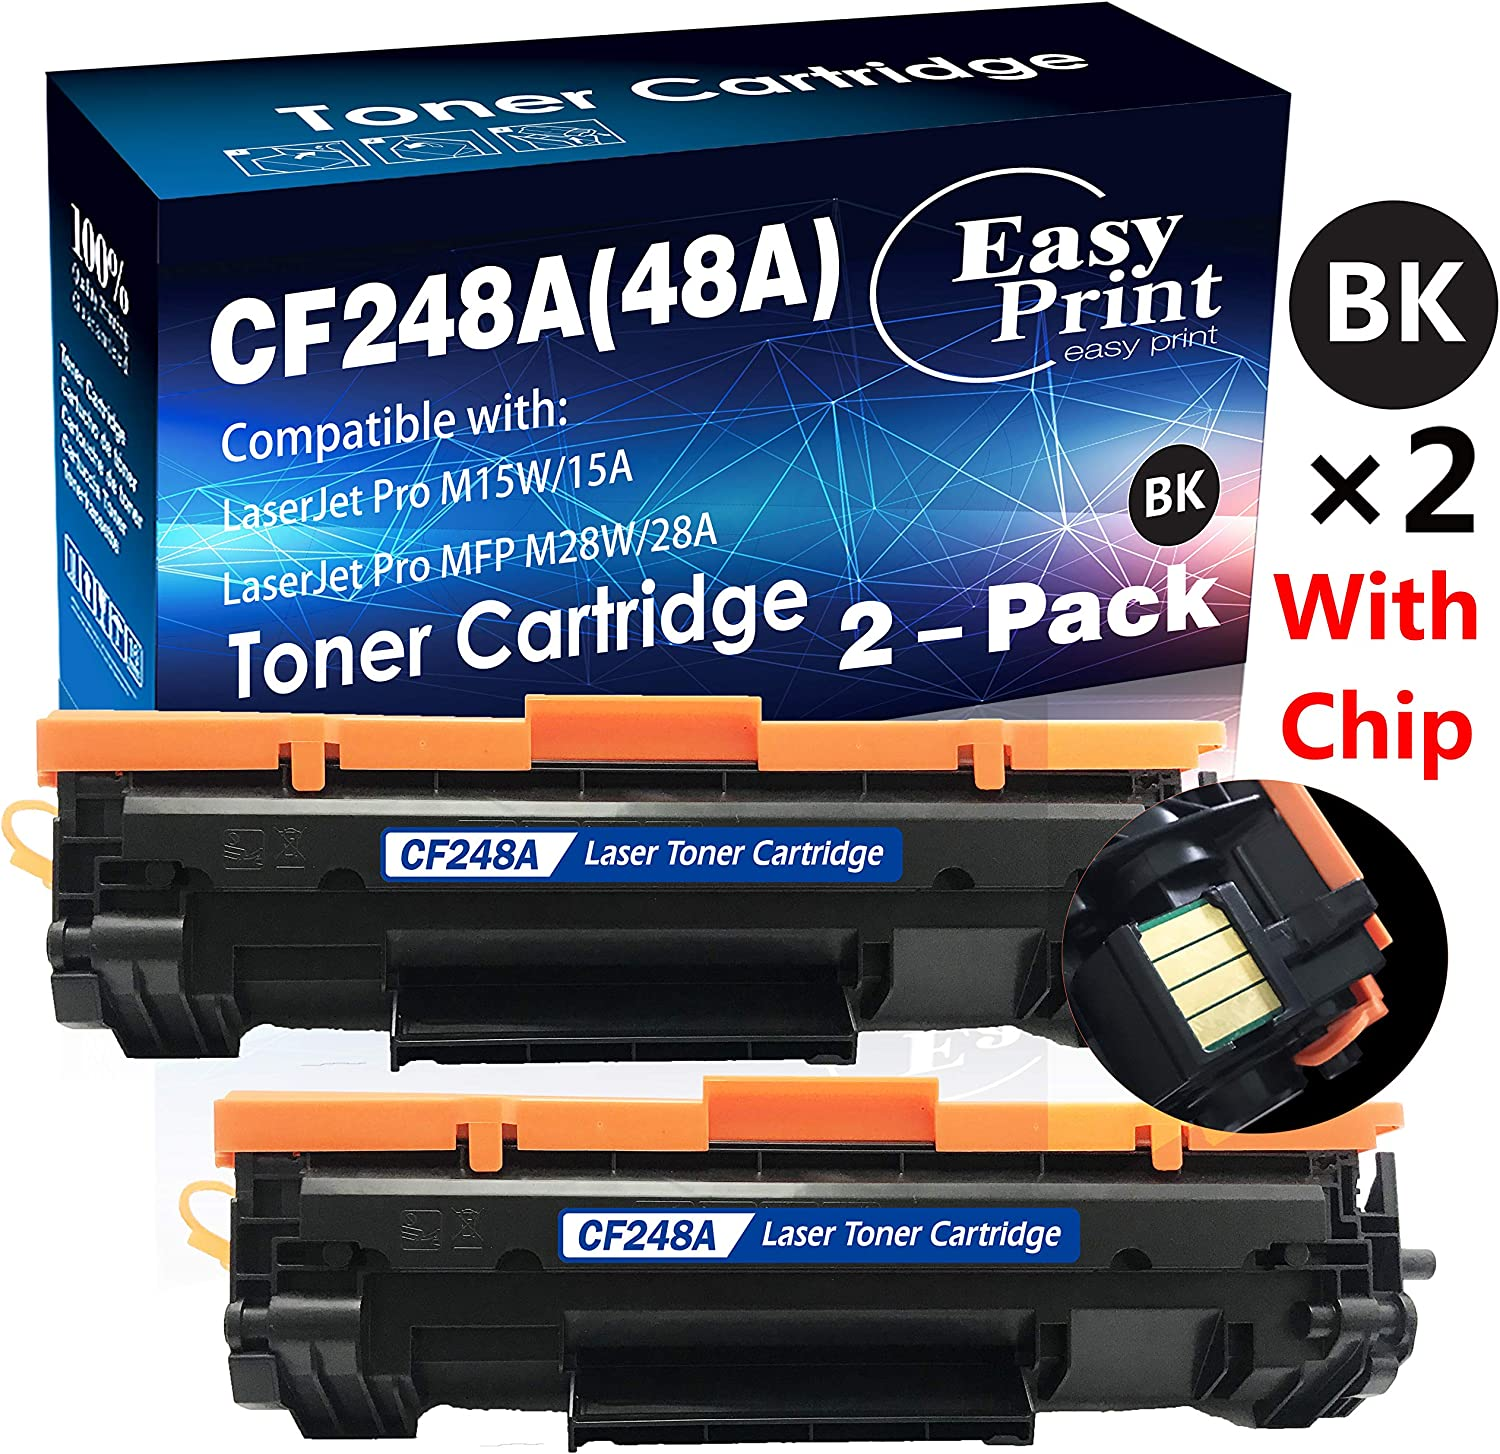 (2-Pack) Compatible 48A CF248A Toner Cartridge 48A Used for HP Laserjet Pro M15w M15a MFP M28w M28a Printer (2X Black), by EasyPrint